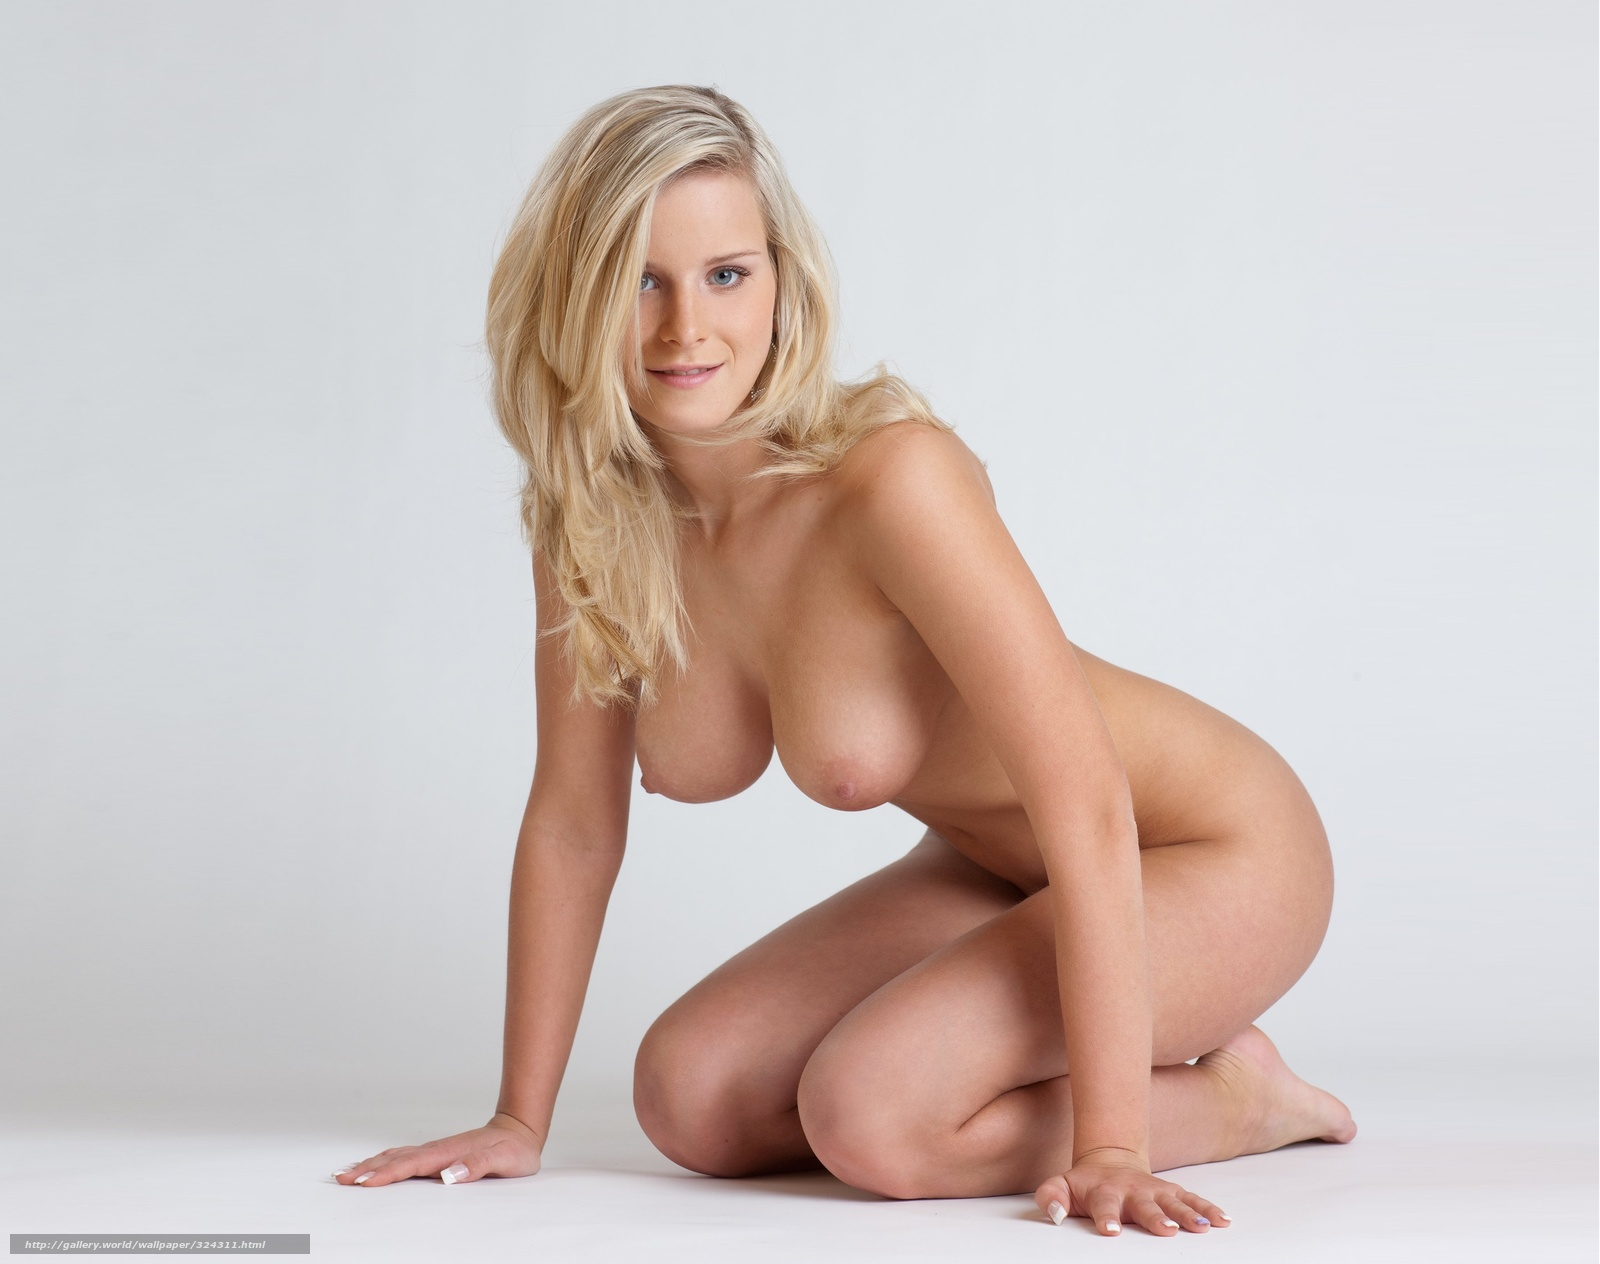 324311_miela_model_blondinka_figura_supe